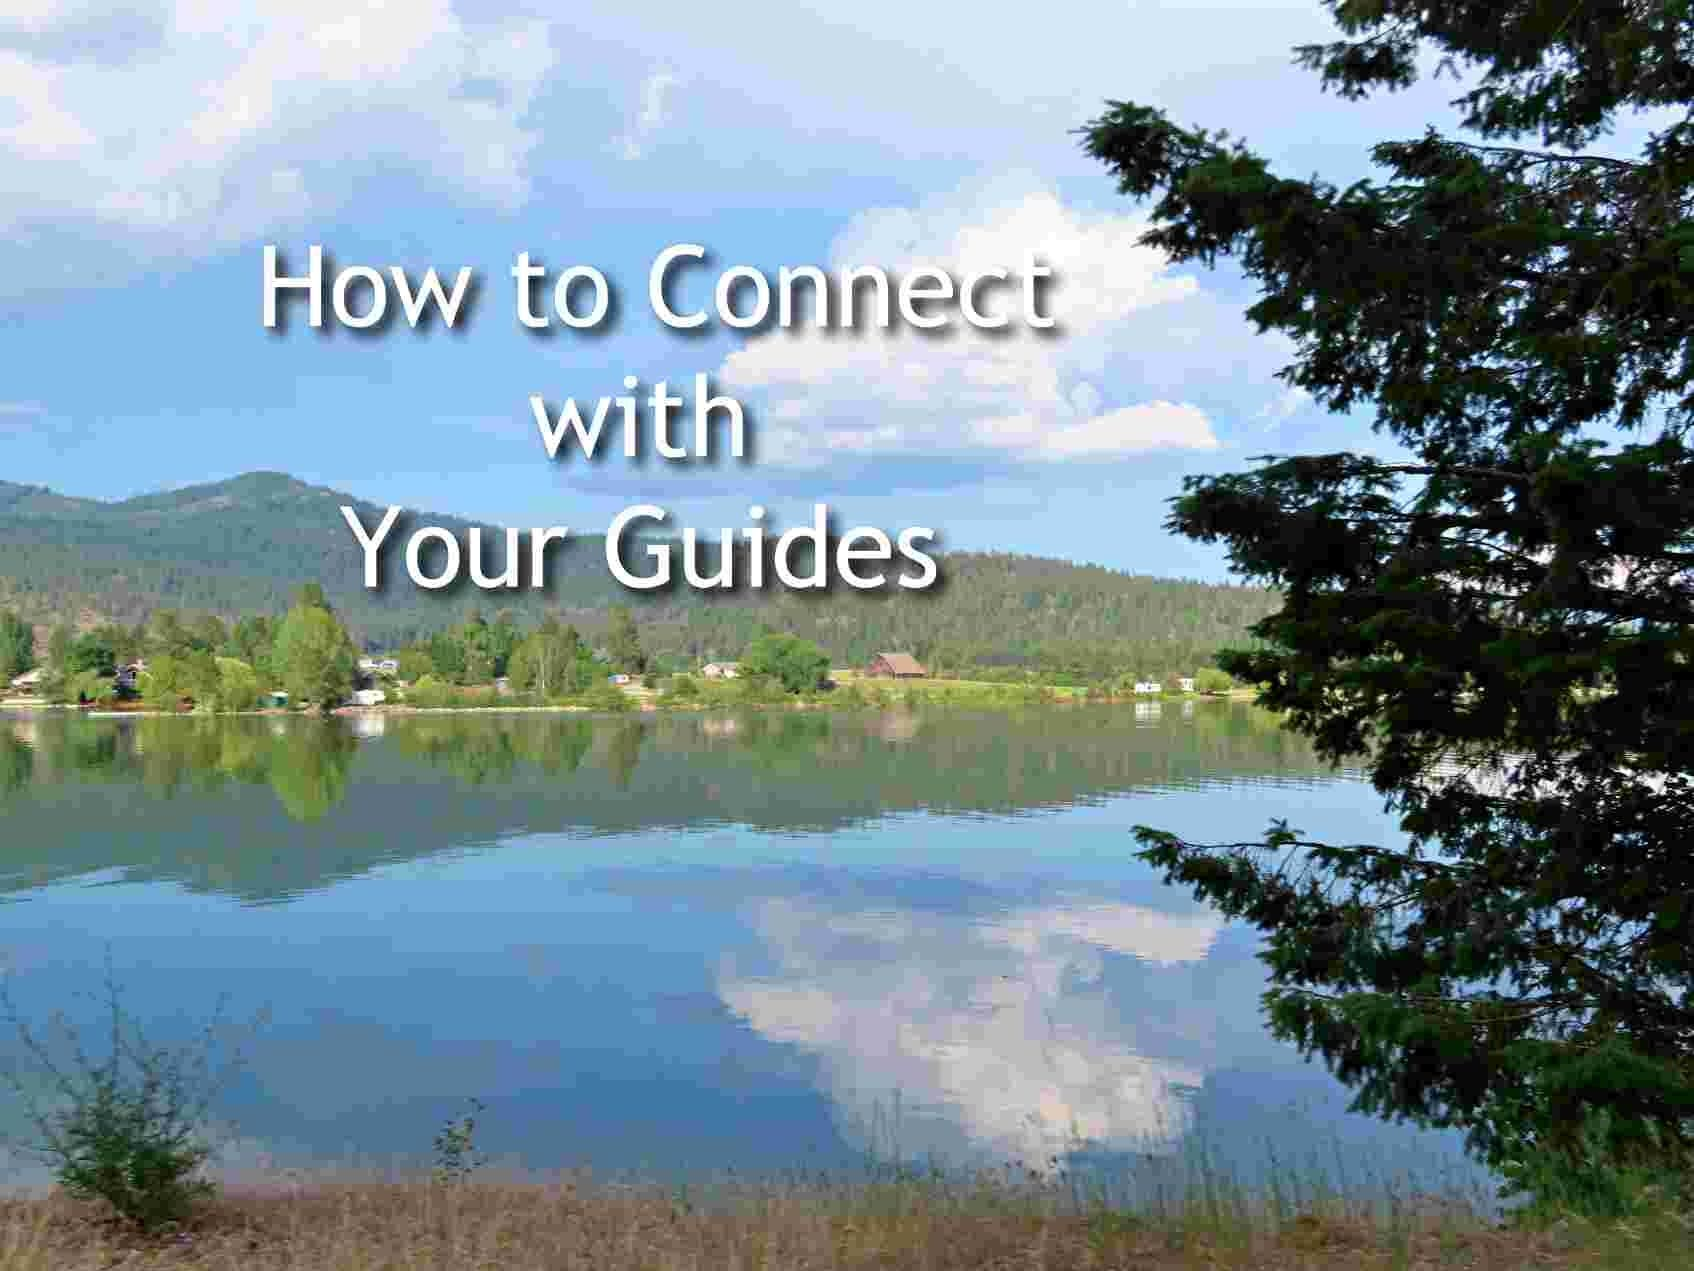 How to Connect to Our Guides